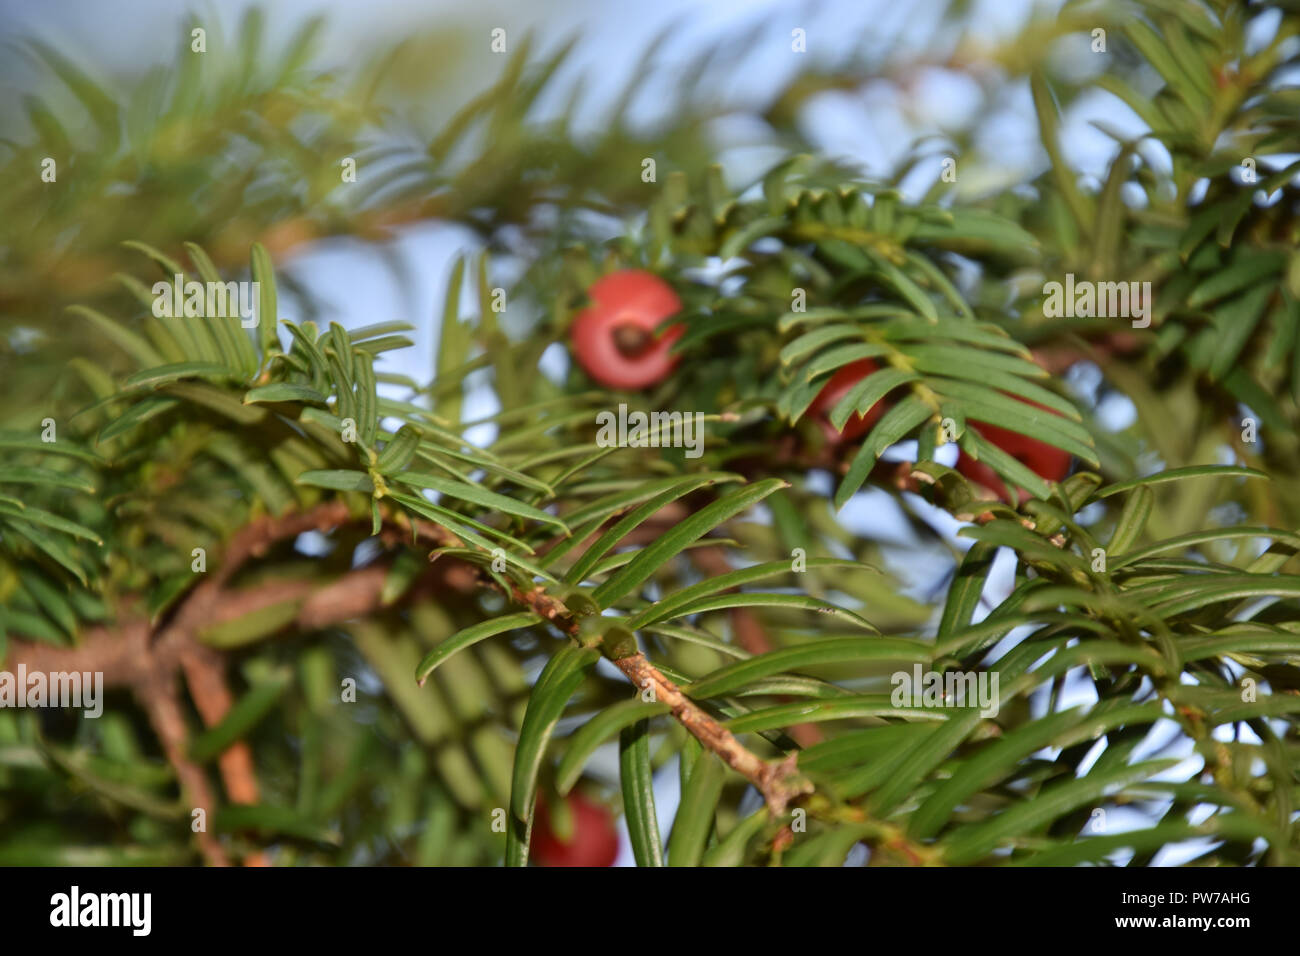 taxus baccata tree with spirally arranged mature red cones, european yew in autumn - Stock Image